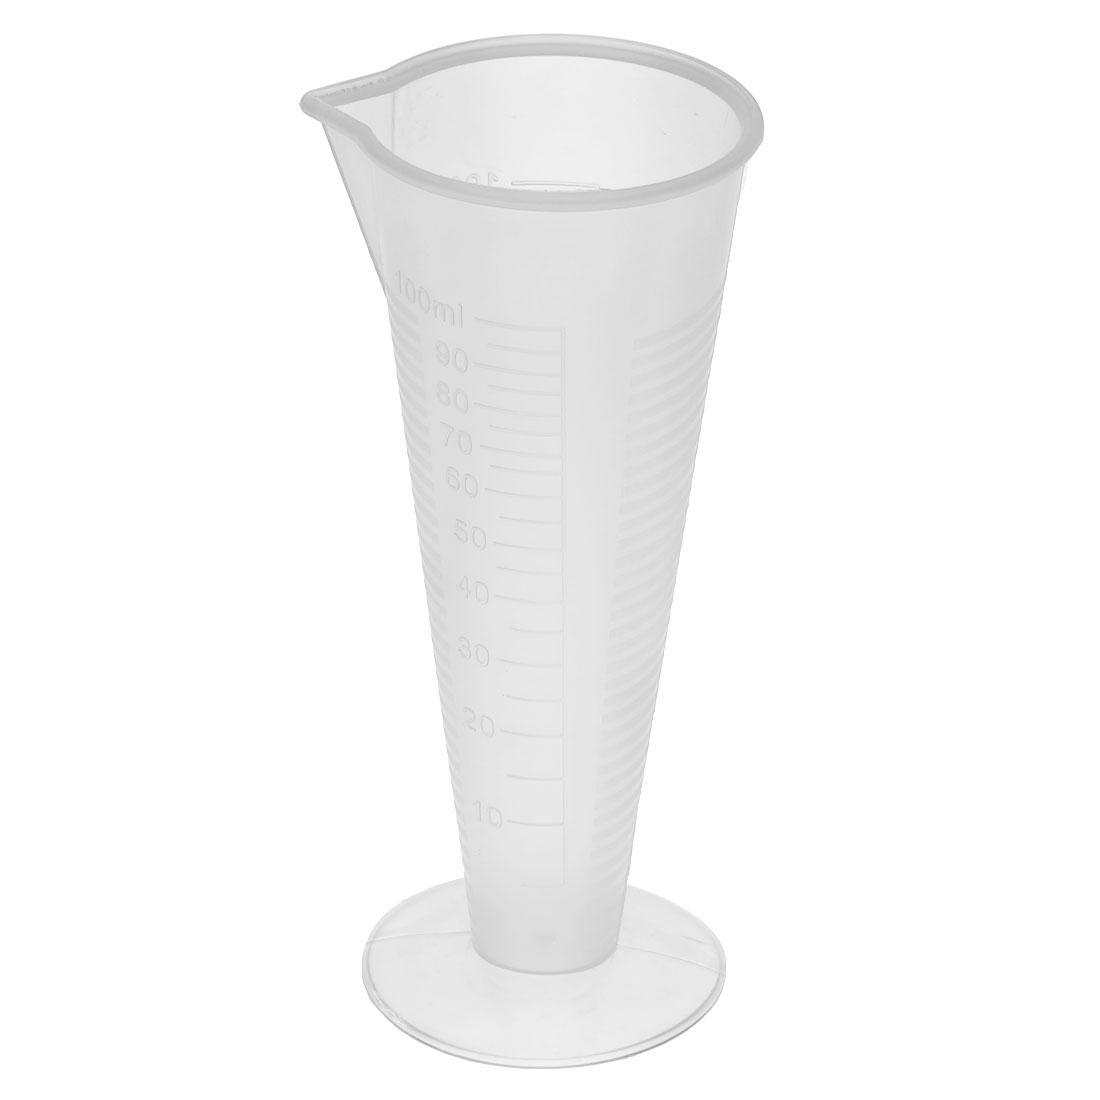 Kitchen Laboratory Plastic Cylindrical Shape Measuring Cup Clear 100ml Capacity